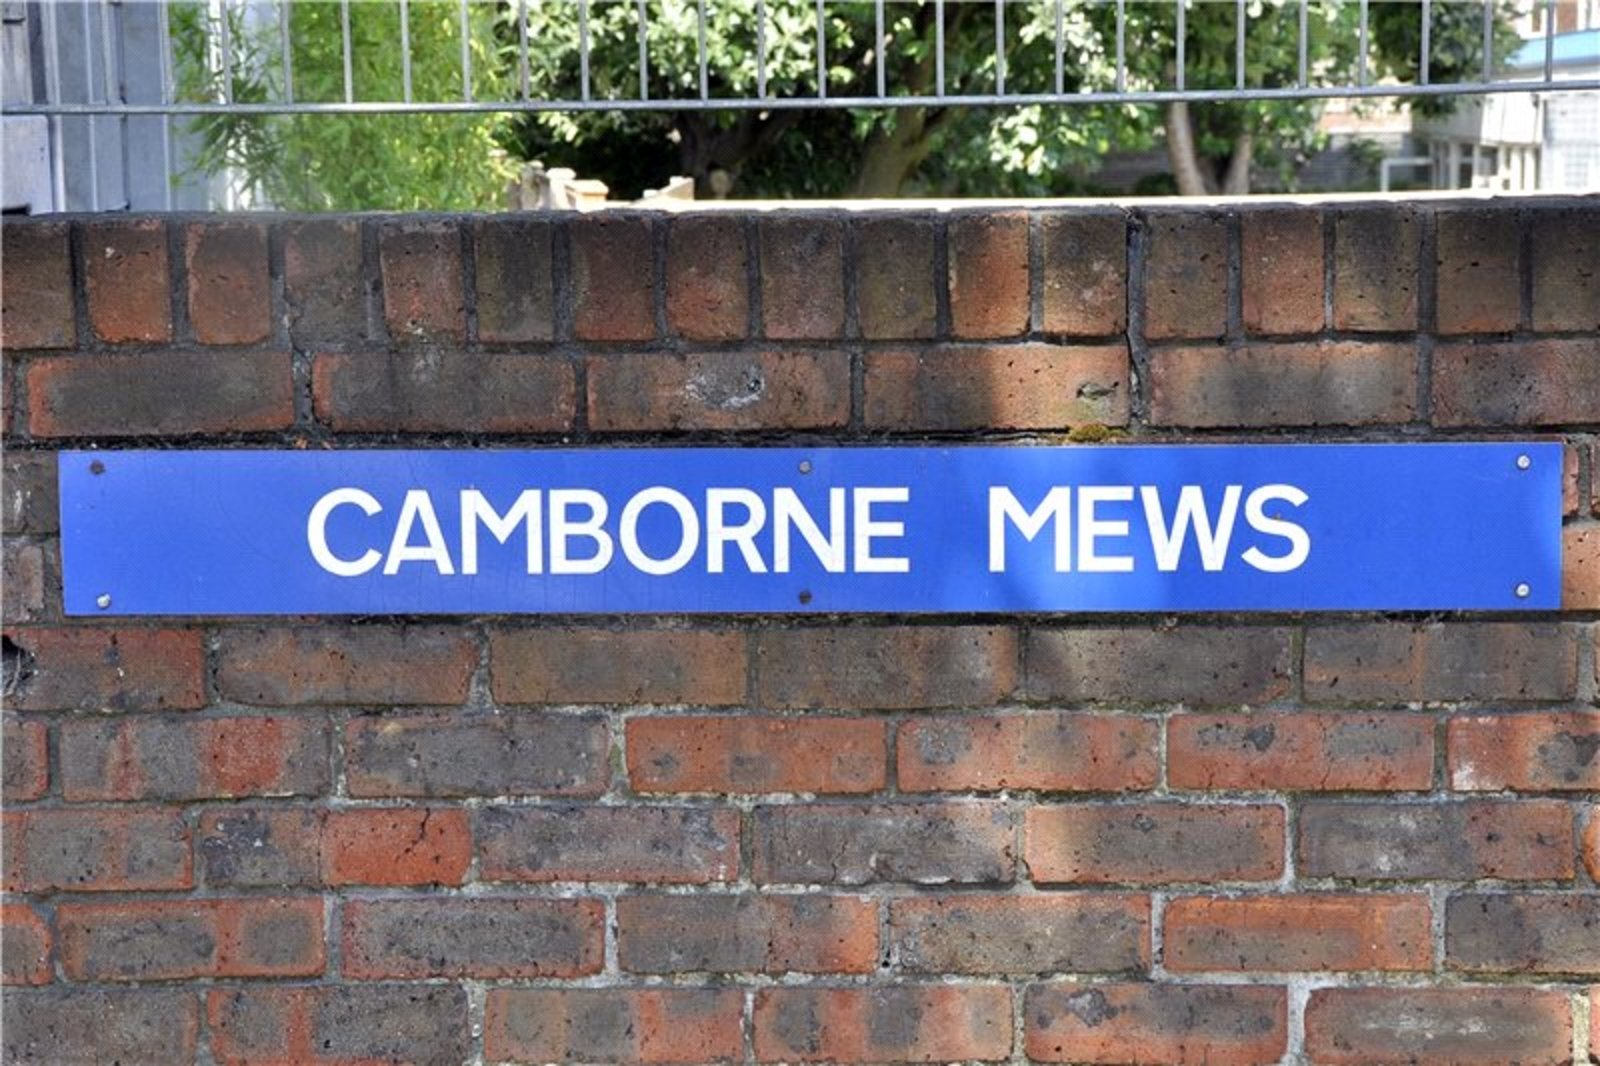 Camborne Mews, Westbourne Grove, Notting Hill, London, W11-4